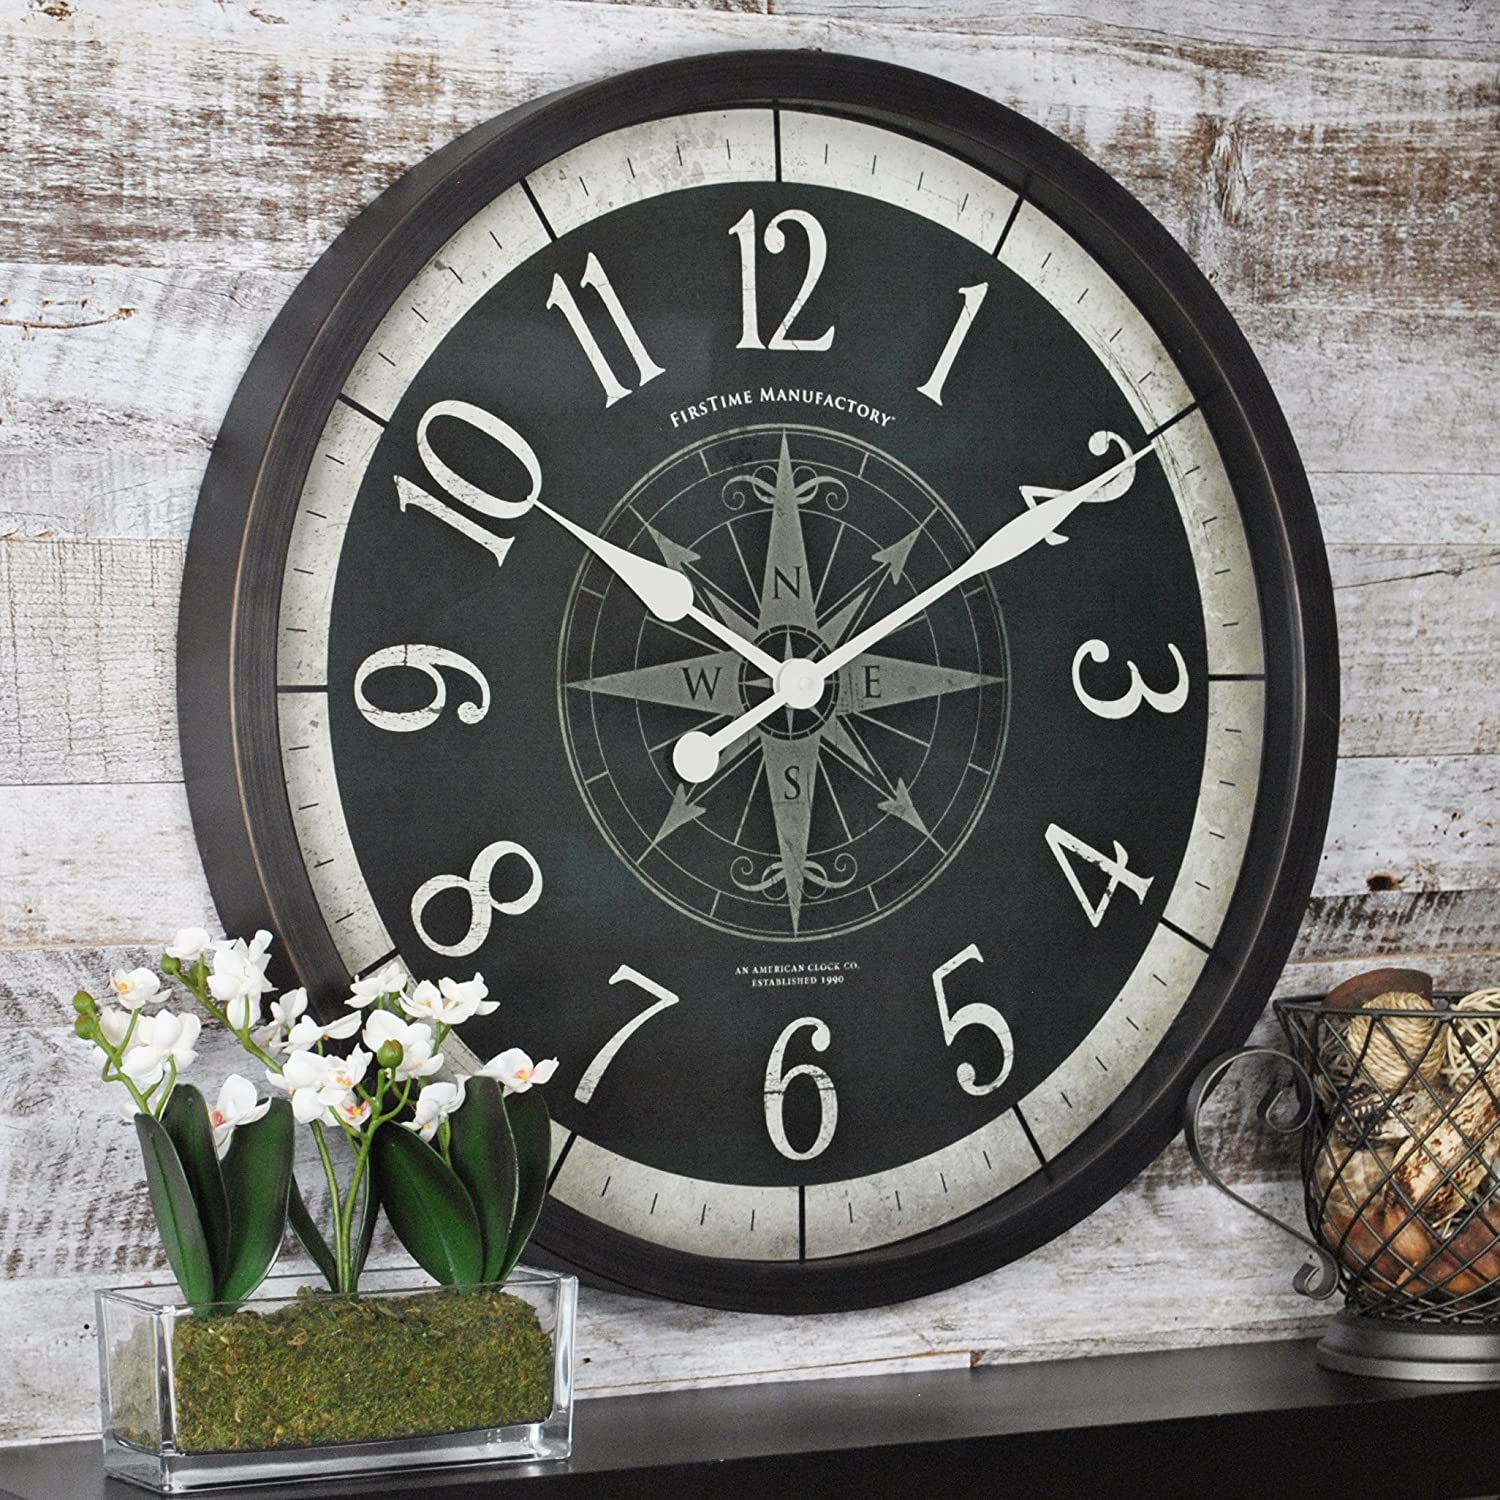 FirsTime & Co. Compass Rose Wall Clock, American Crafted, Oil Rubbed Bronze, 24 x 2 x 24, (10062)